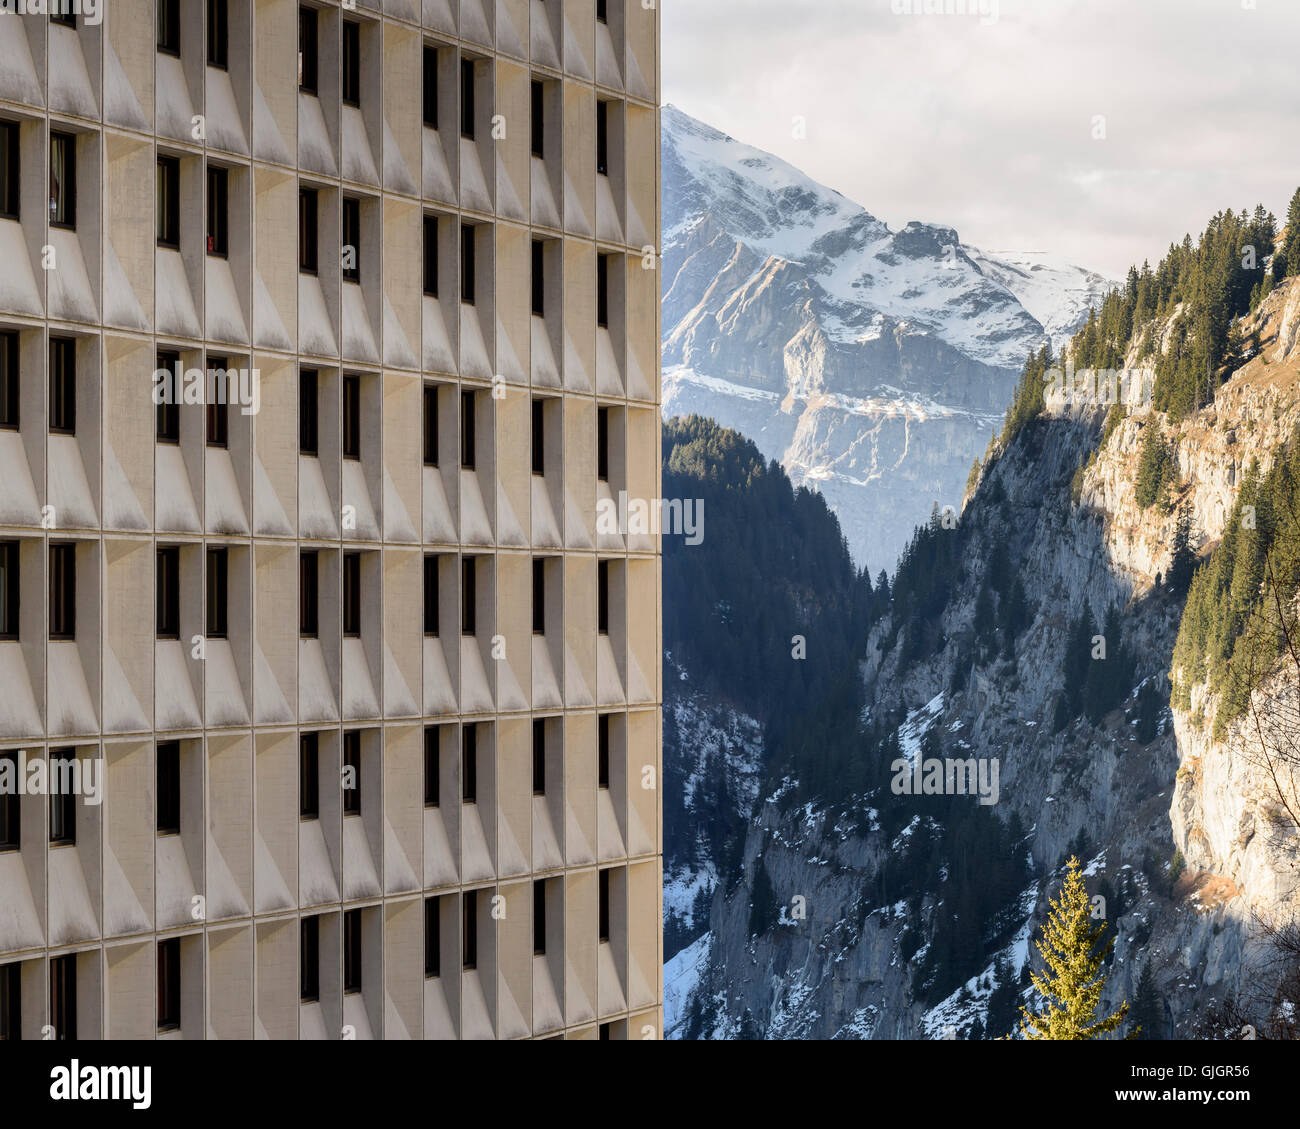 Building and mountains. Flaine, Flaine, France. Architect: Marcel Breuer, 1969. Stock Photo